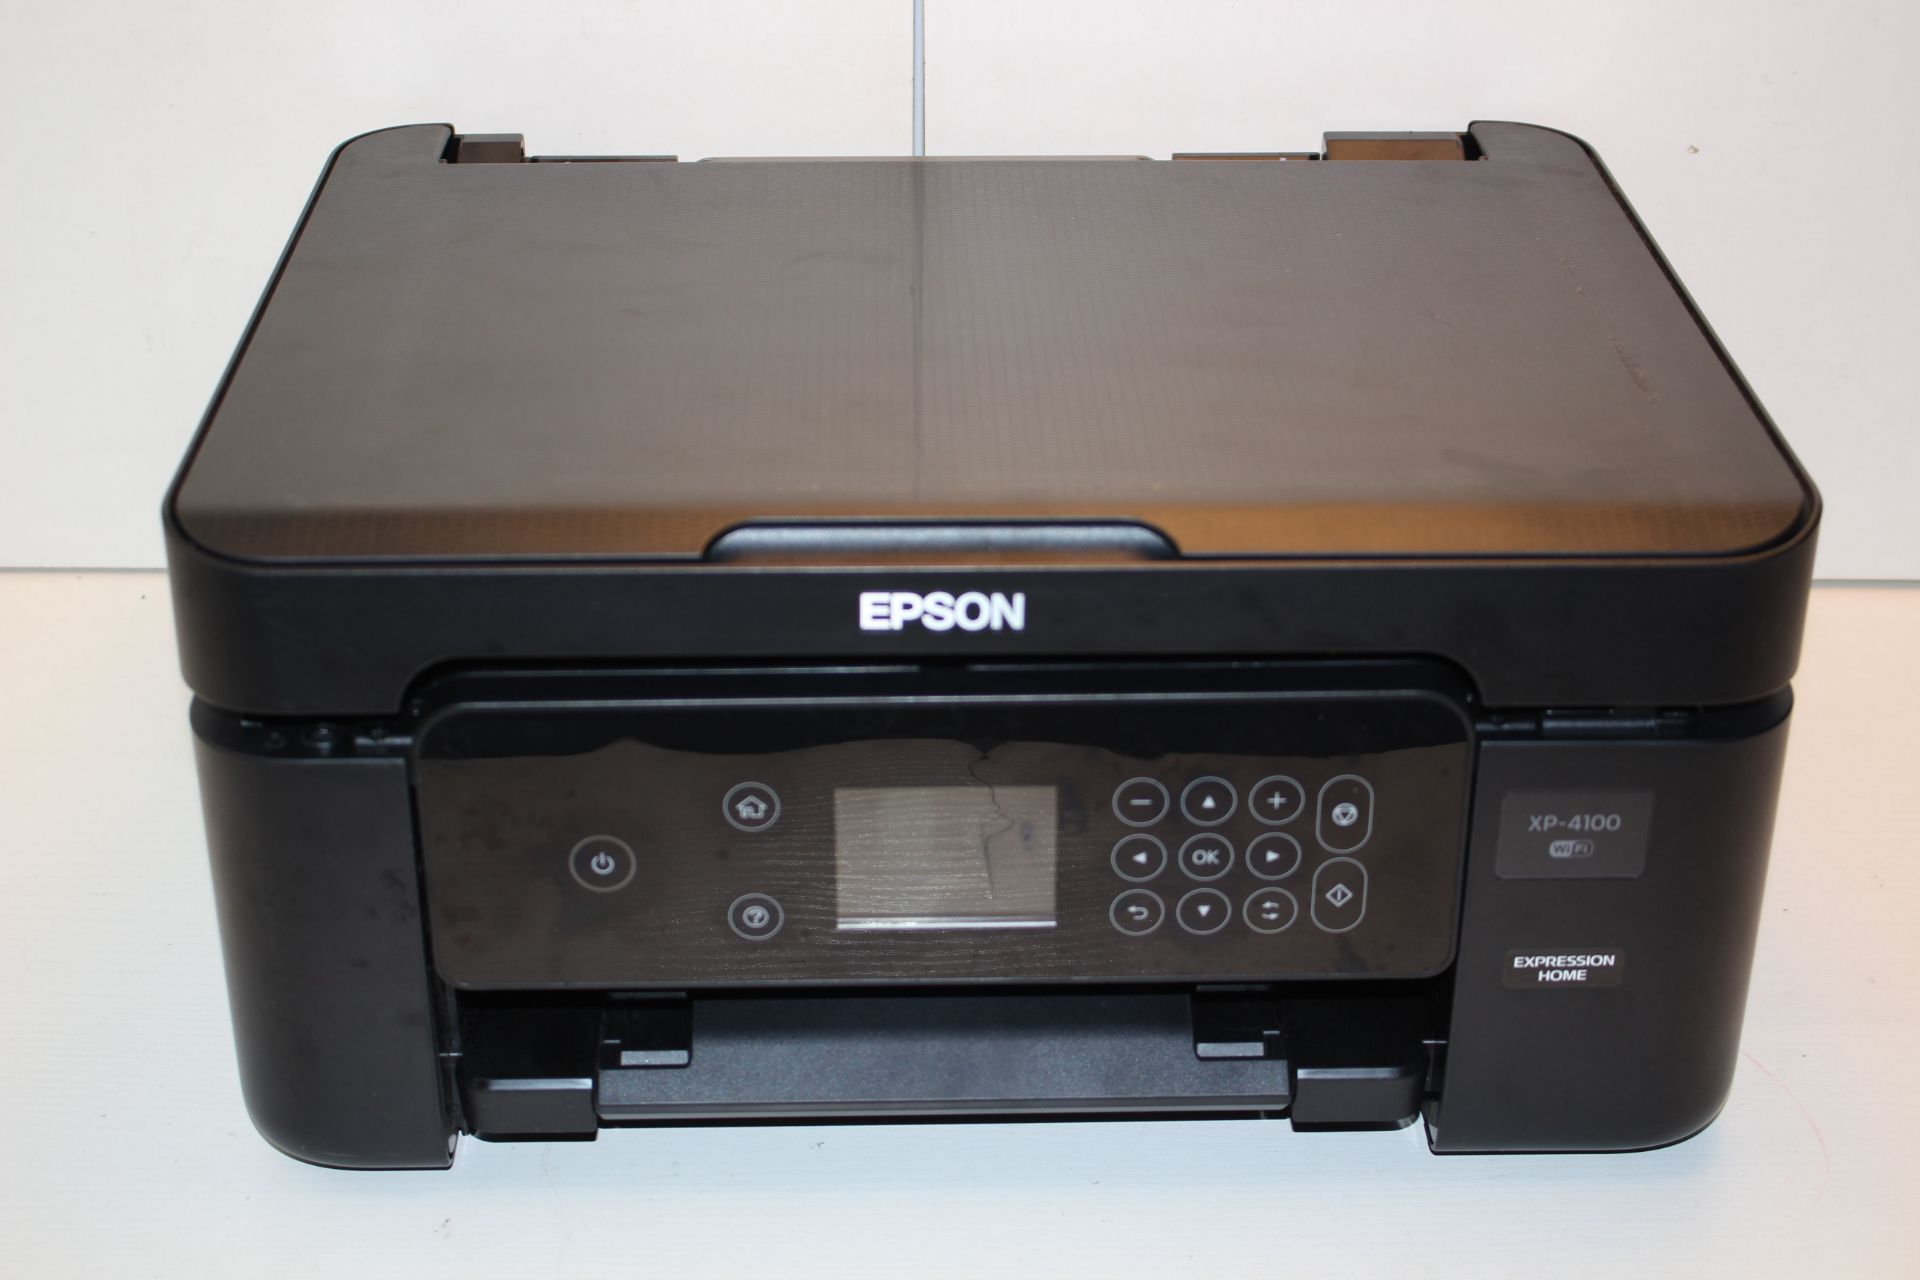 UNBOXED EPSON EXPRESSION HOME PRINTER RRP £49.99Condition ReportAppraisal Available on Request-